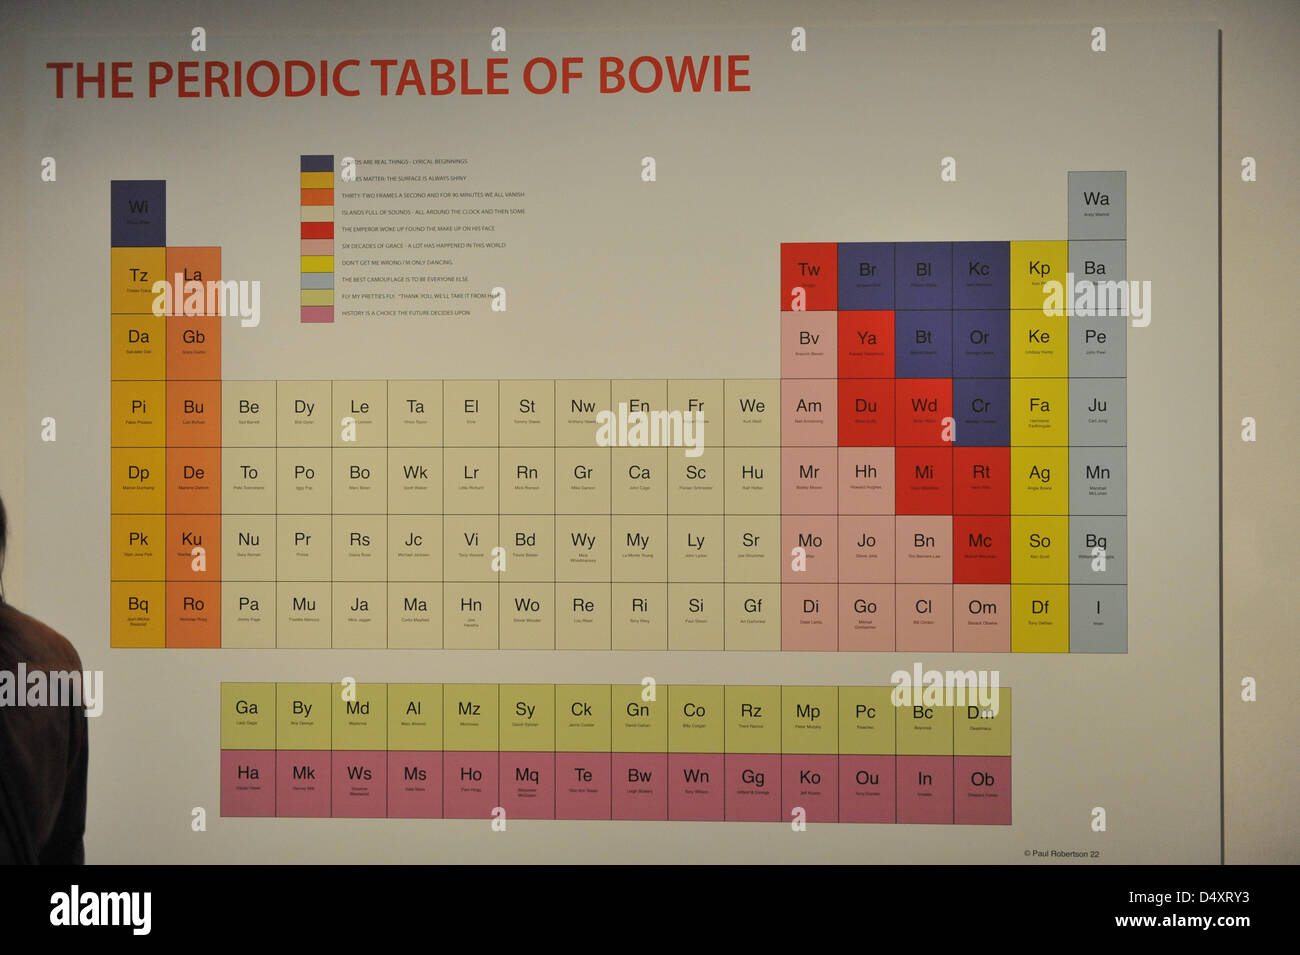 Va london uk 20th march 2013 the periodic table of bowie at the periodic table of bowie at urtaz Image collections